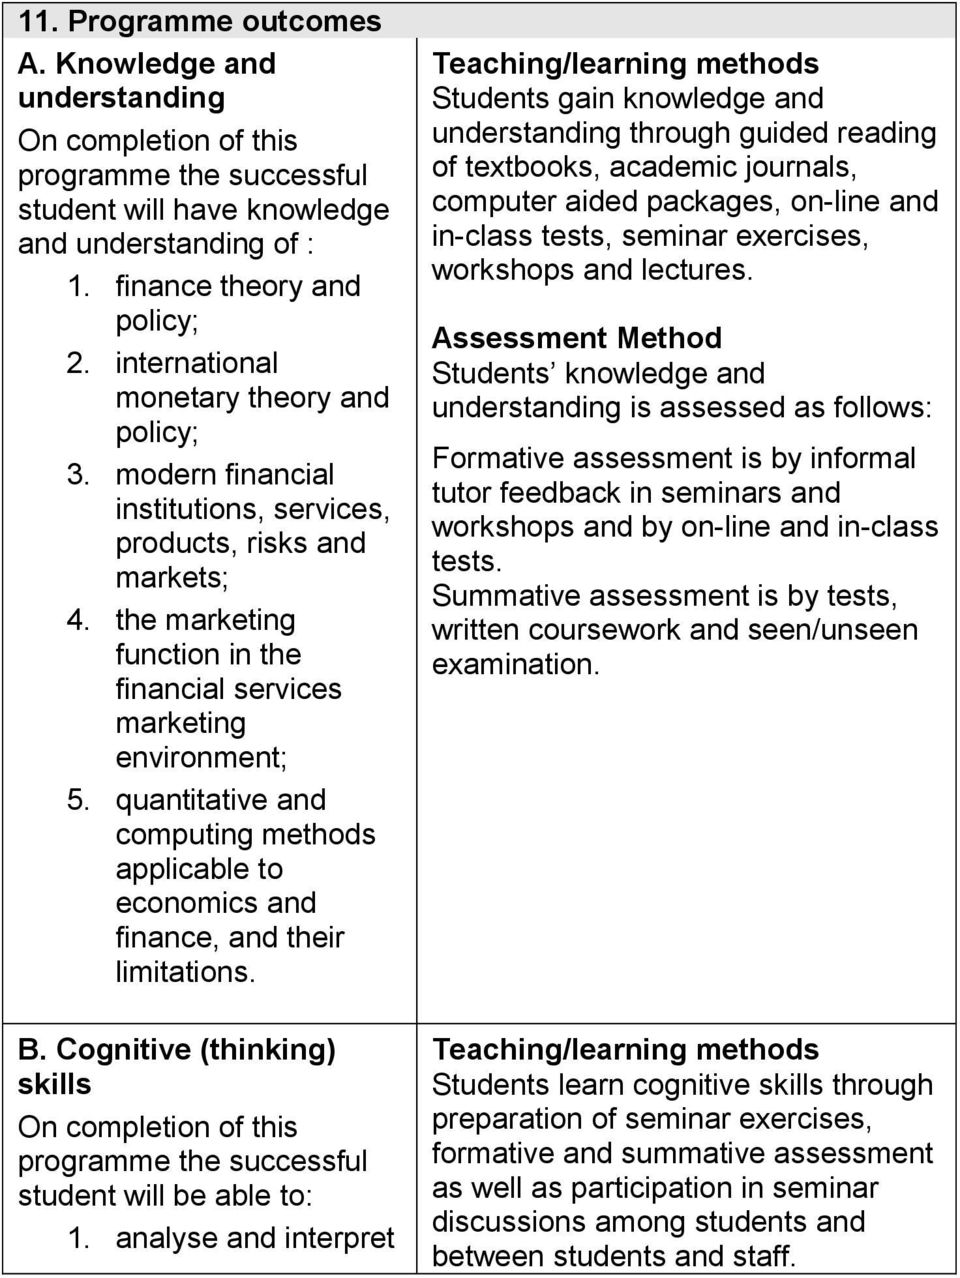 quantitative and computing methods applicable to economics and finance, and their limitations. B. Cognitive (thinking) skills On completion of this programme the successful student will be able to: 1.